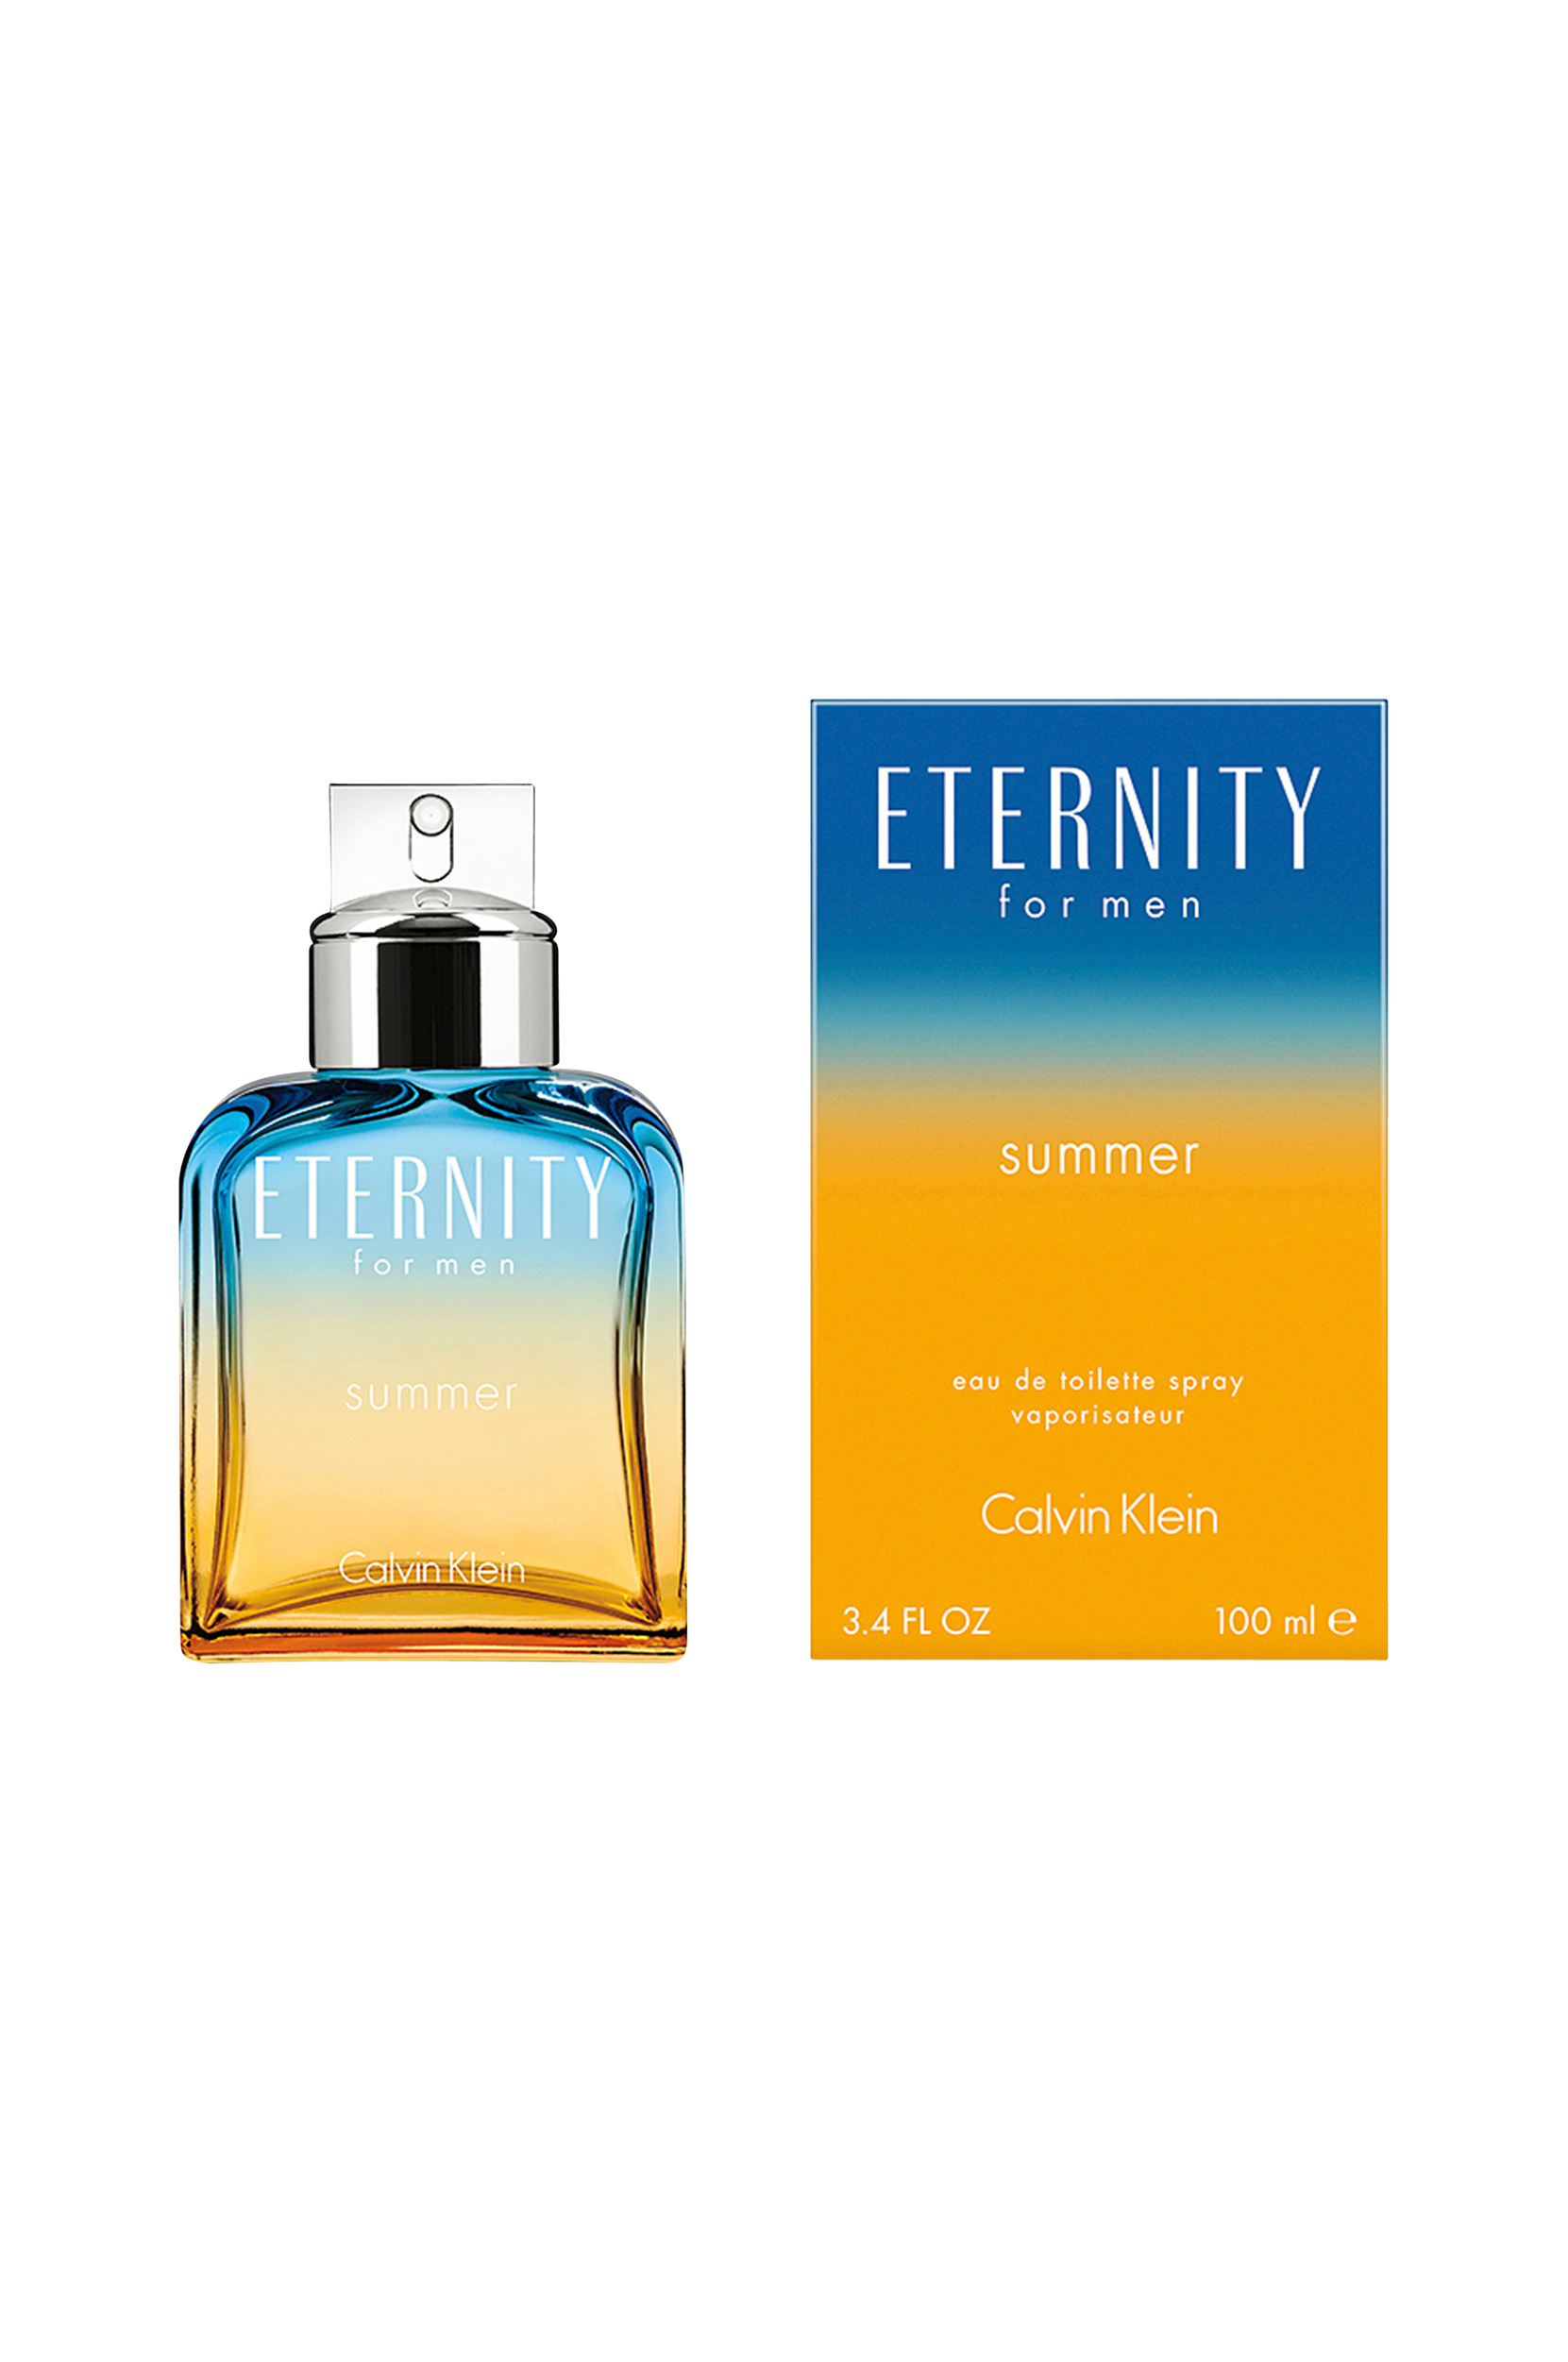 Ck Eternity Limited Edition Edt 100 ml